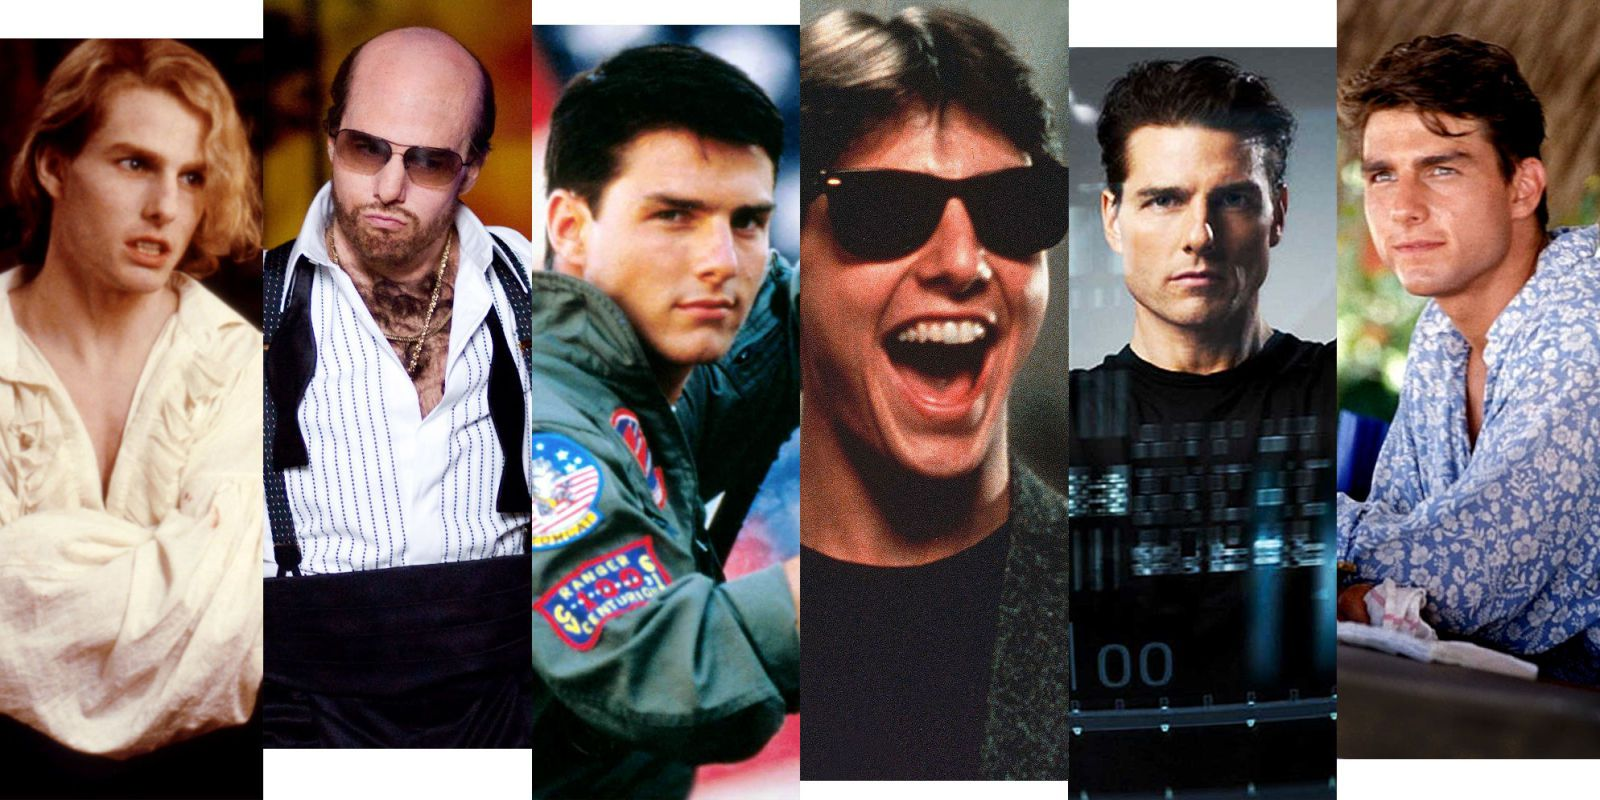 Tom Cruise Films facts